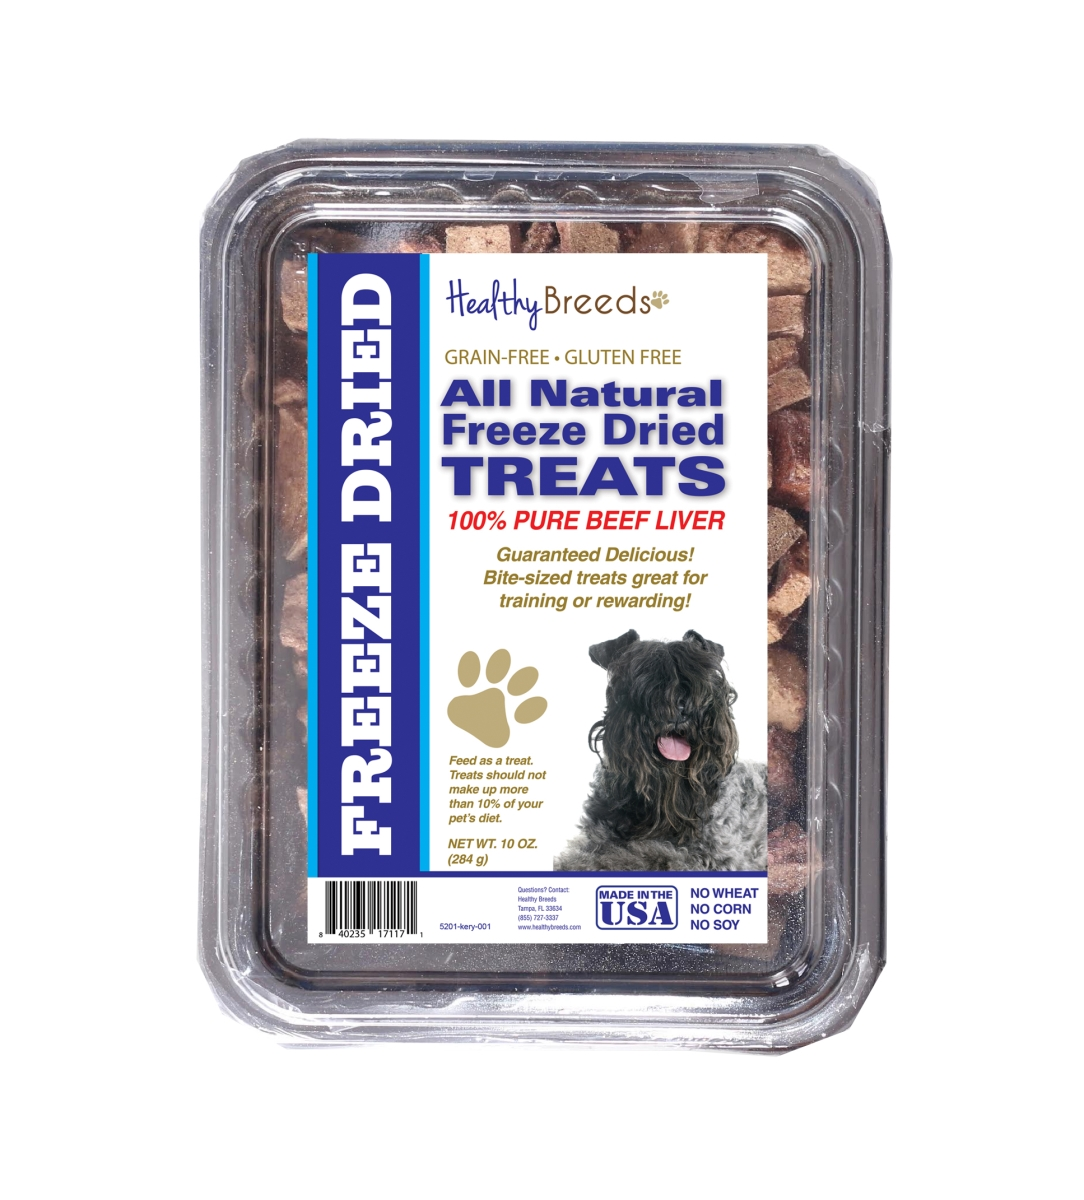 Healthy Breeds 840235171171 10 oz Kerry Blue Terrier All Natural Freeze Dried Treats Beef Liver